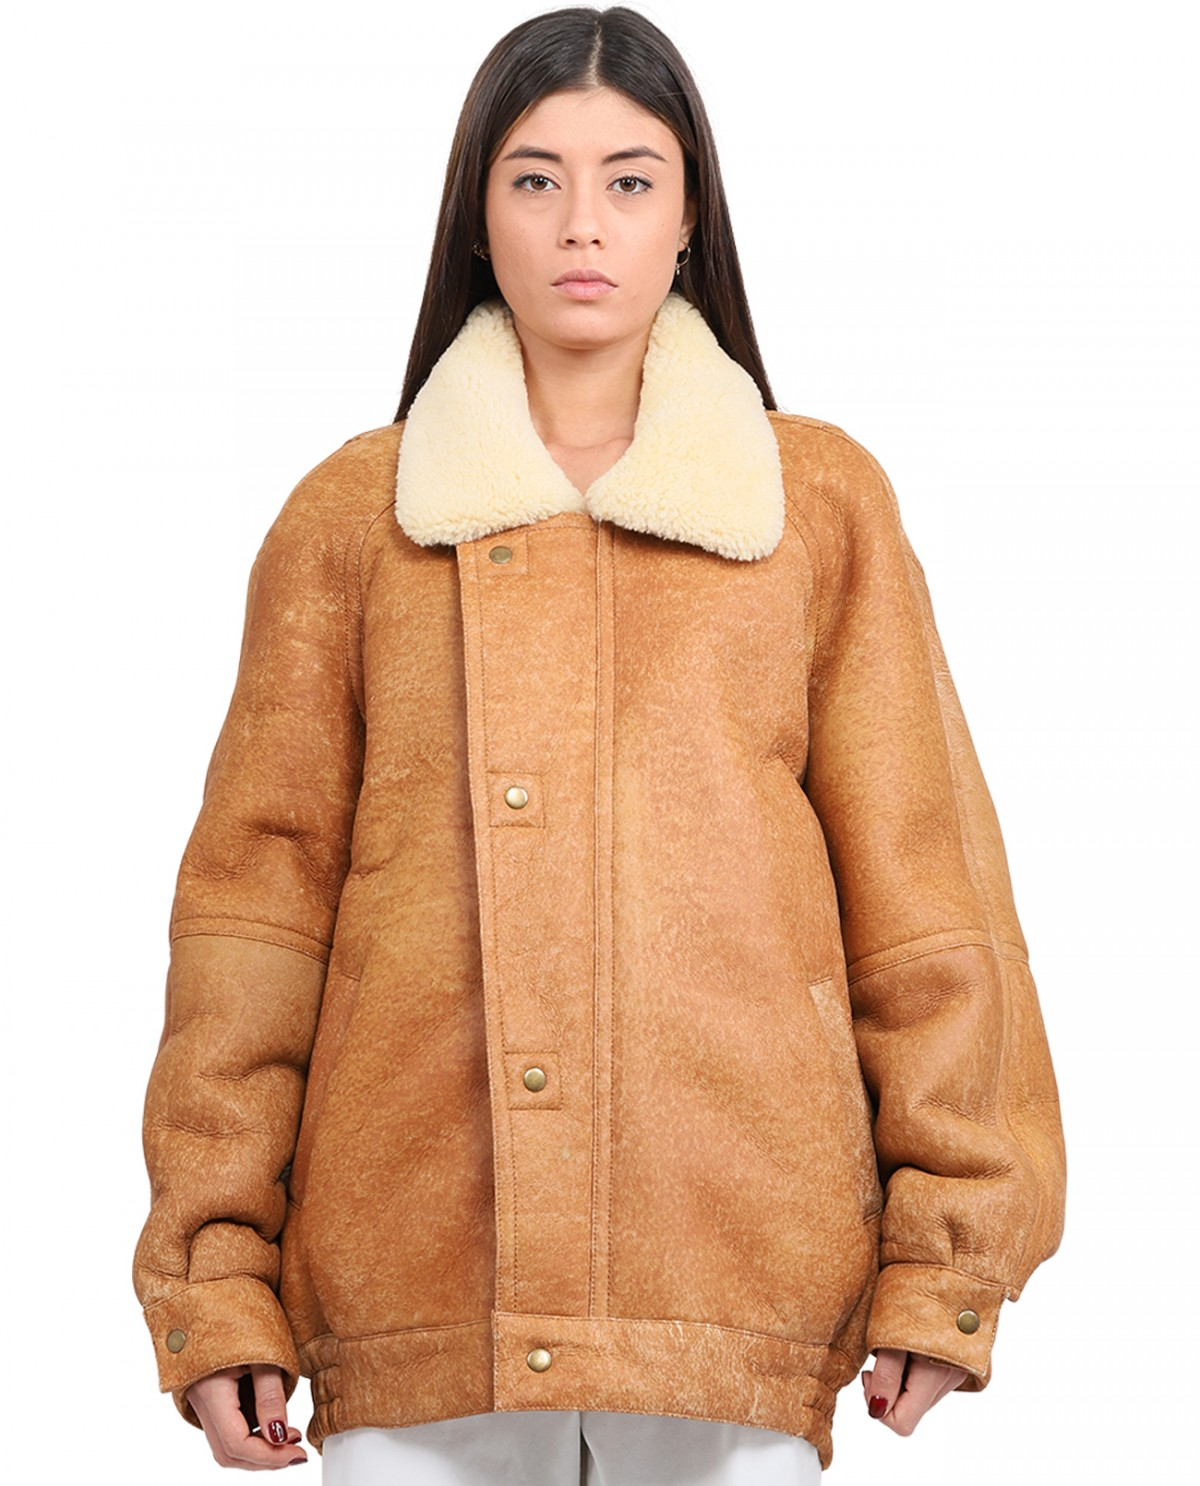 COOL T.M. brown shearling coat